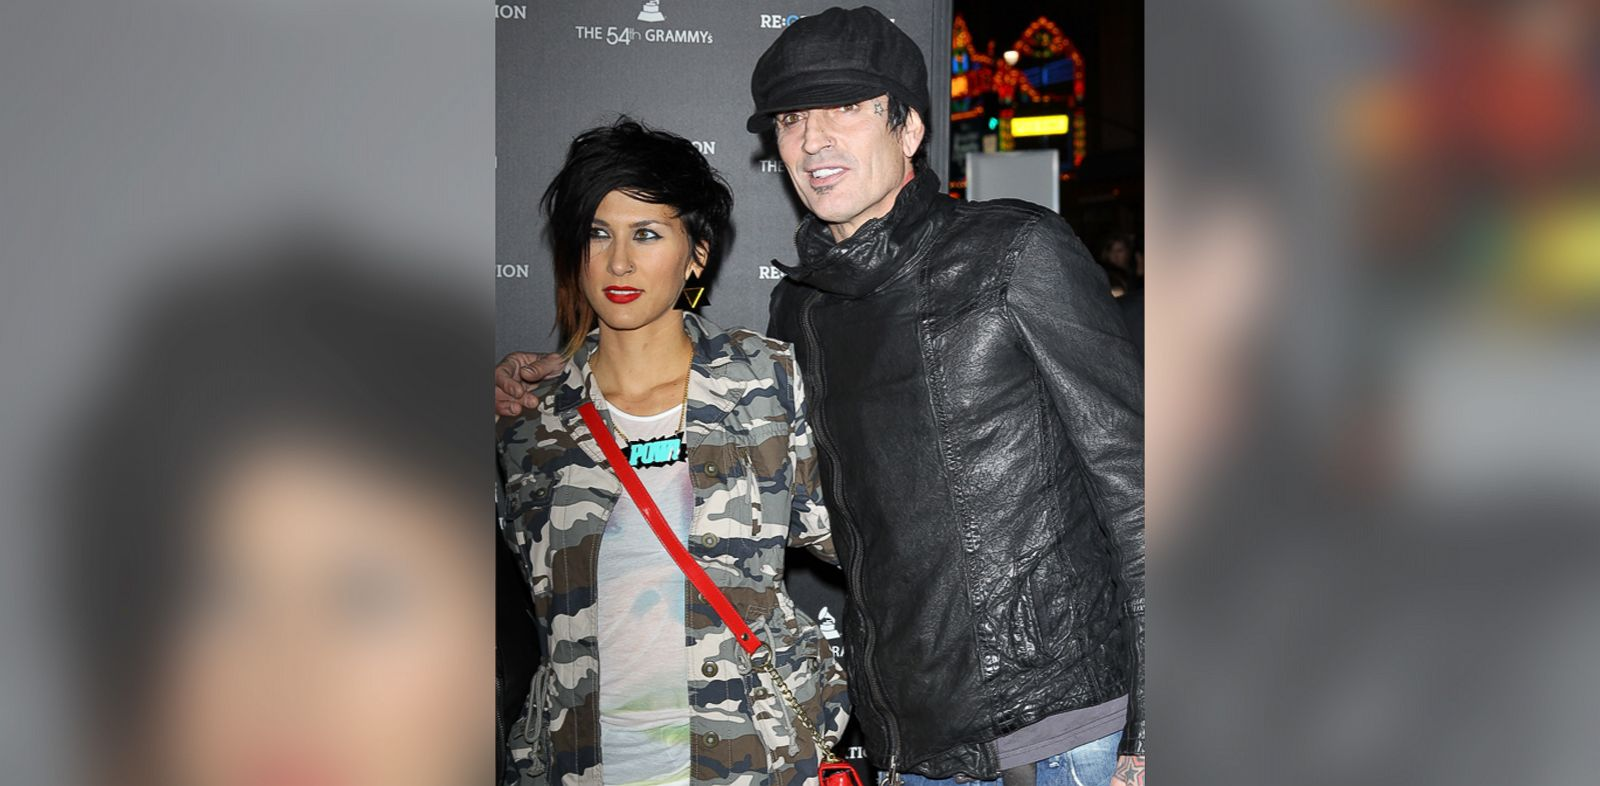 PHOTO: Tommy Lee, right, and girlfriend, Sofia Toufa arrive at the Los Angeles premiere of Re:Generation Music Project in this Feb. 9, 2012, file photo.